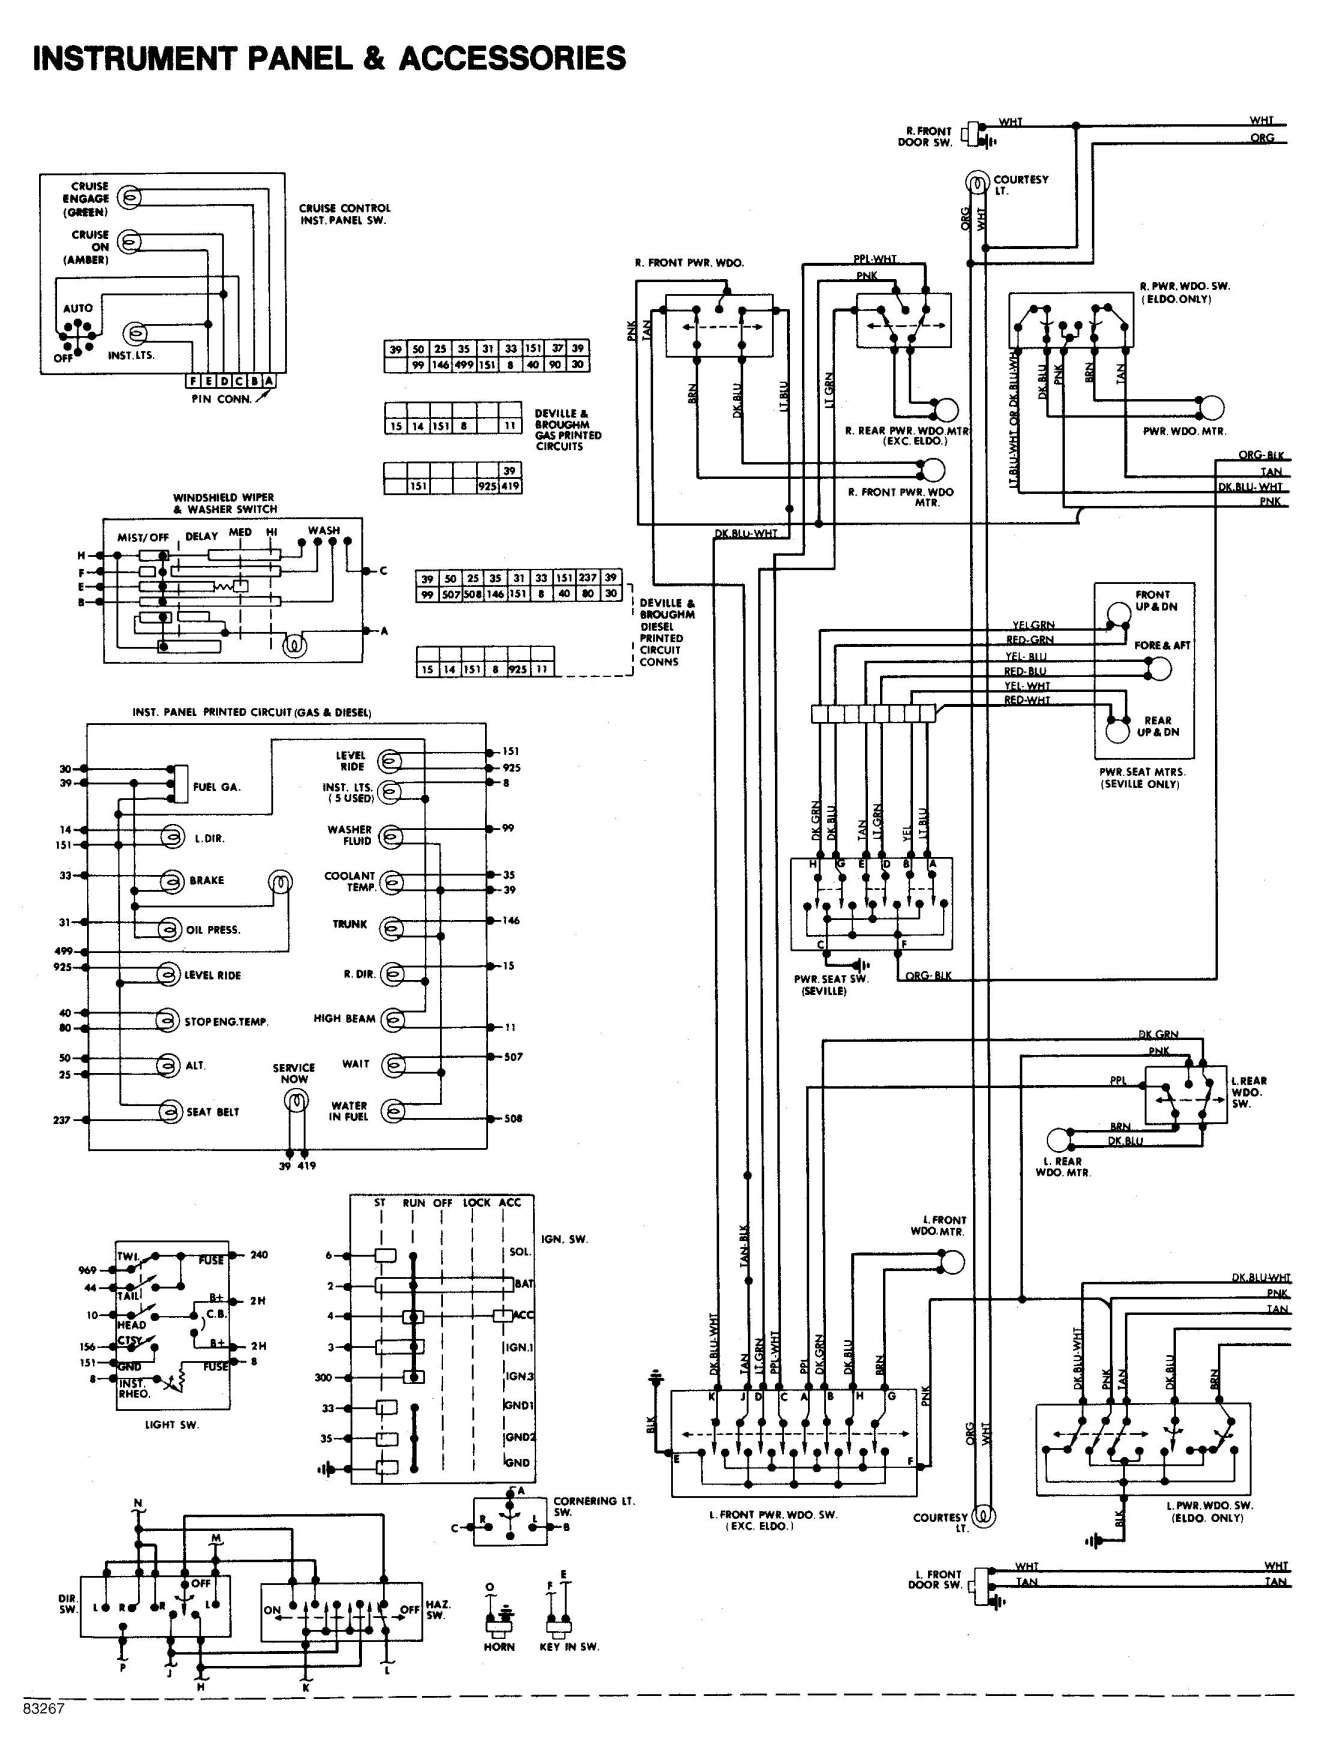 16+ 2000 Honda Accord Car Stereo Wiring Diagram - Car Diagram - Wiringg.net  in 2020 | Electrical wiring diagram, Diagram design, Electrical diagramPinterest